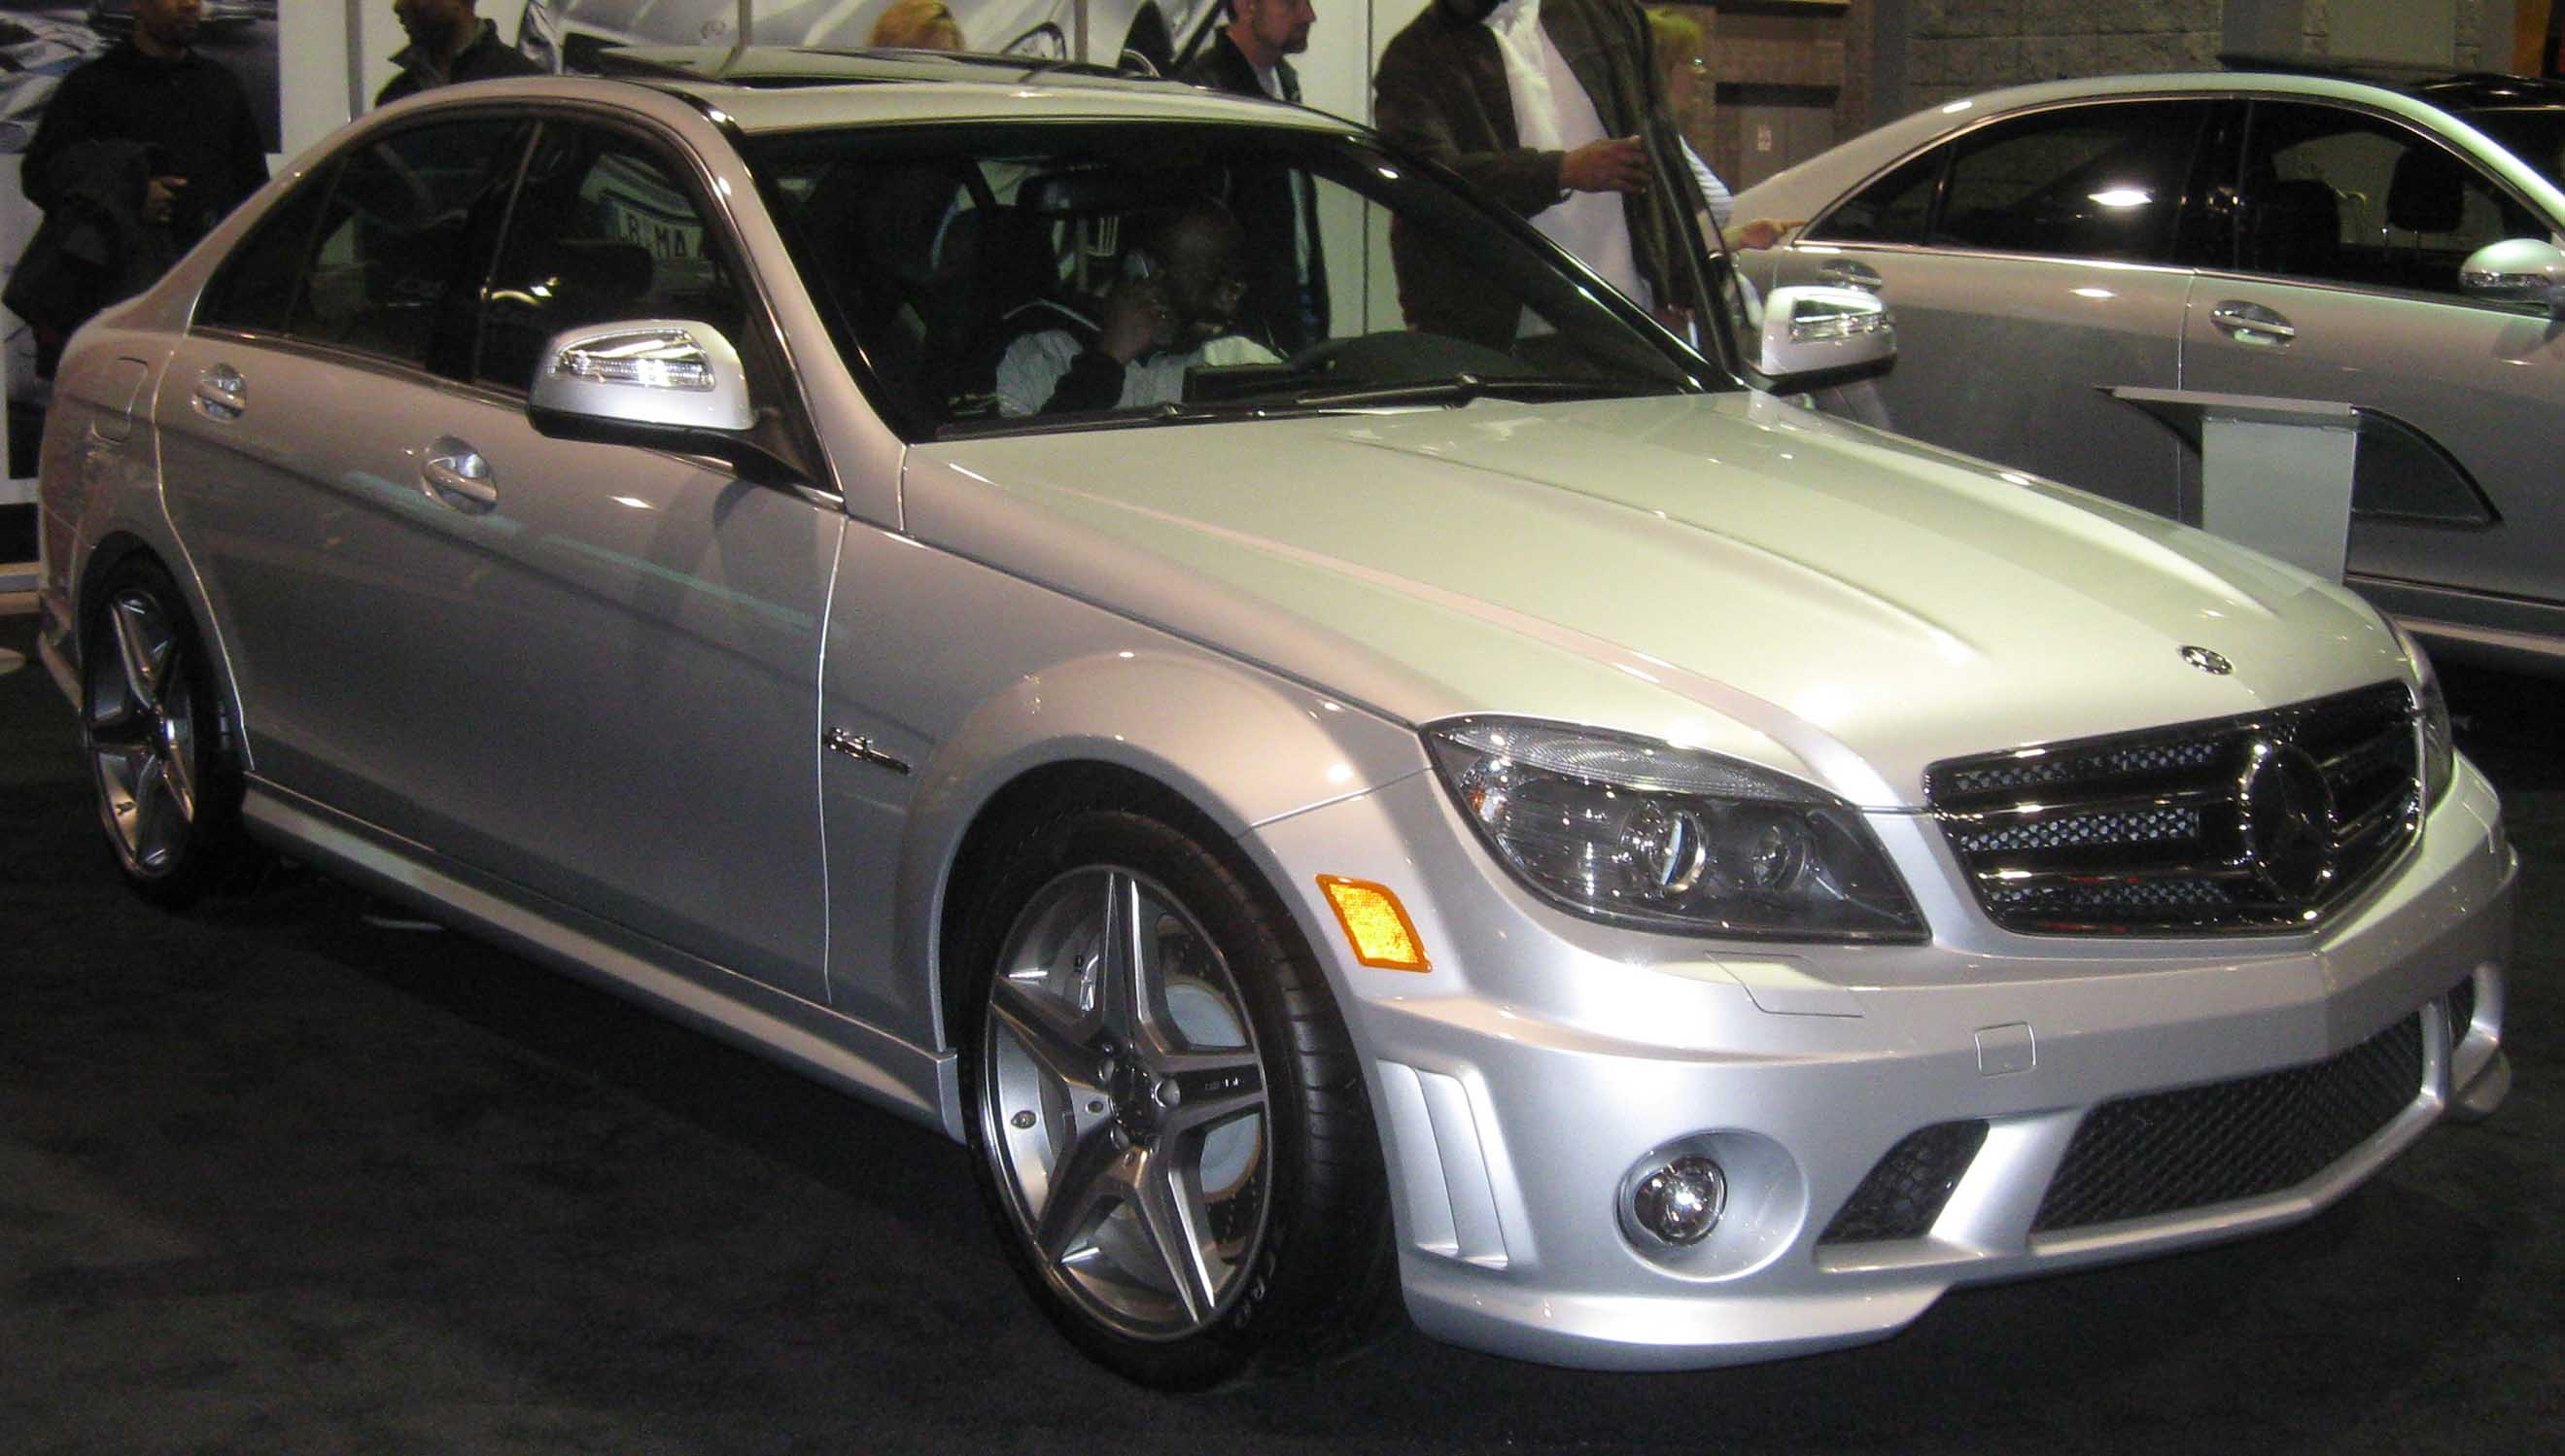 file 2009 mercedes benz c63 amg wikimedia commons